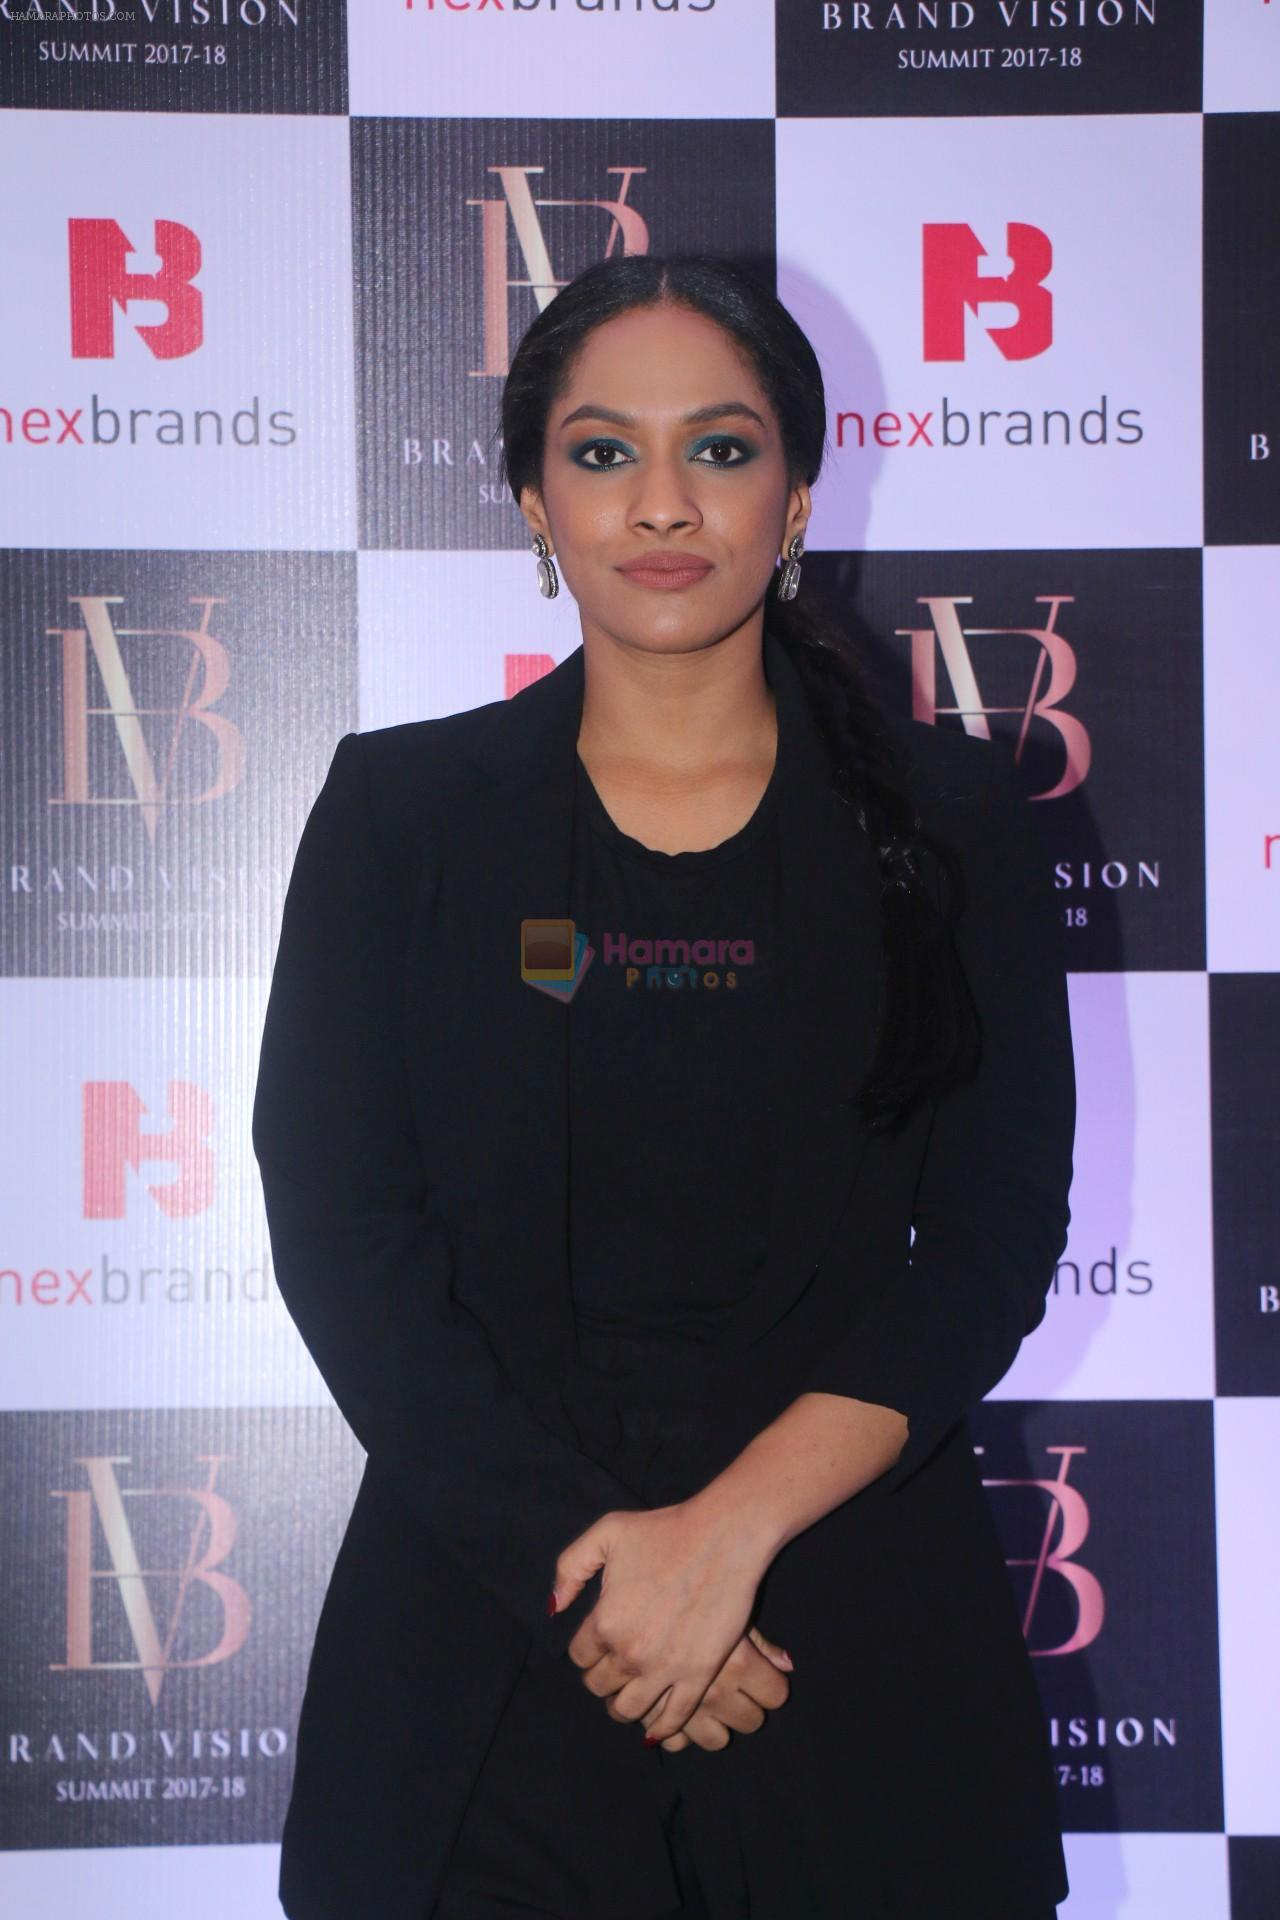 Masaba at the Brand Vision Summit in ITC Grand Maratha on 30th Jan 2018